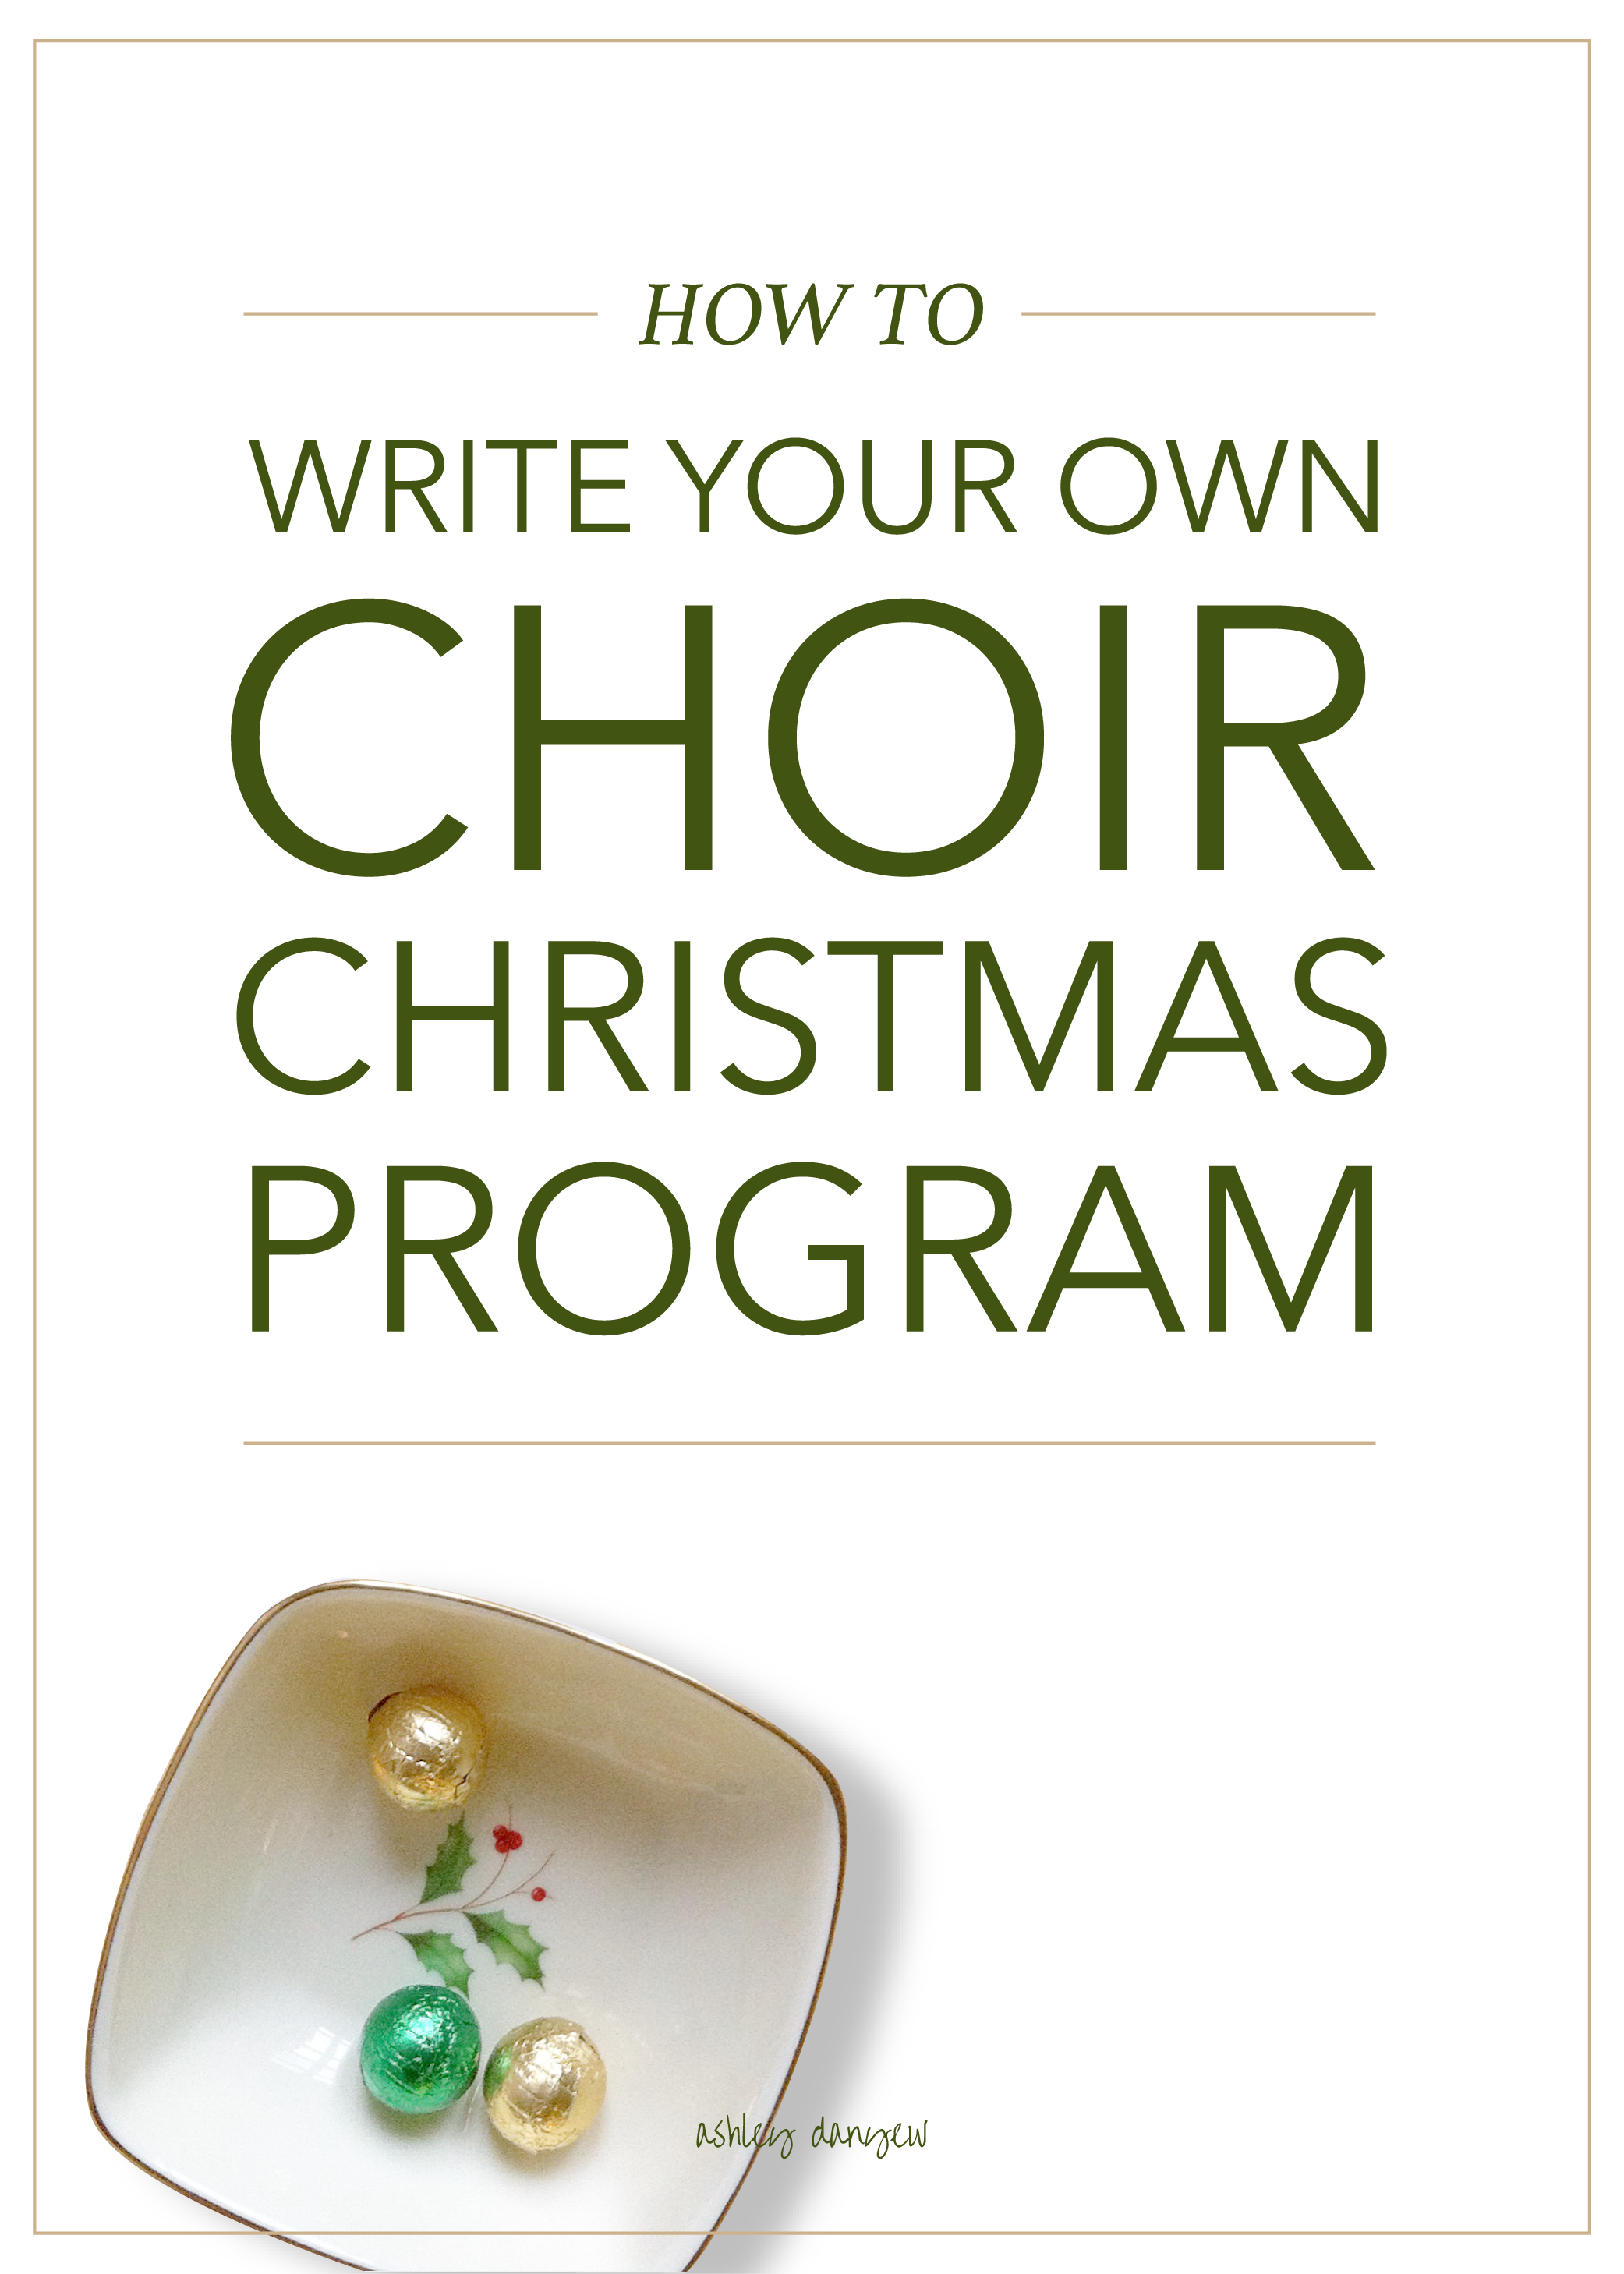 How-to-Write-Your-Own-Choir-Christmas-Program-01.png